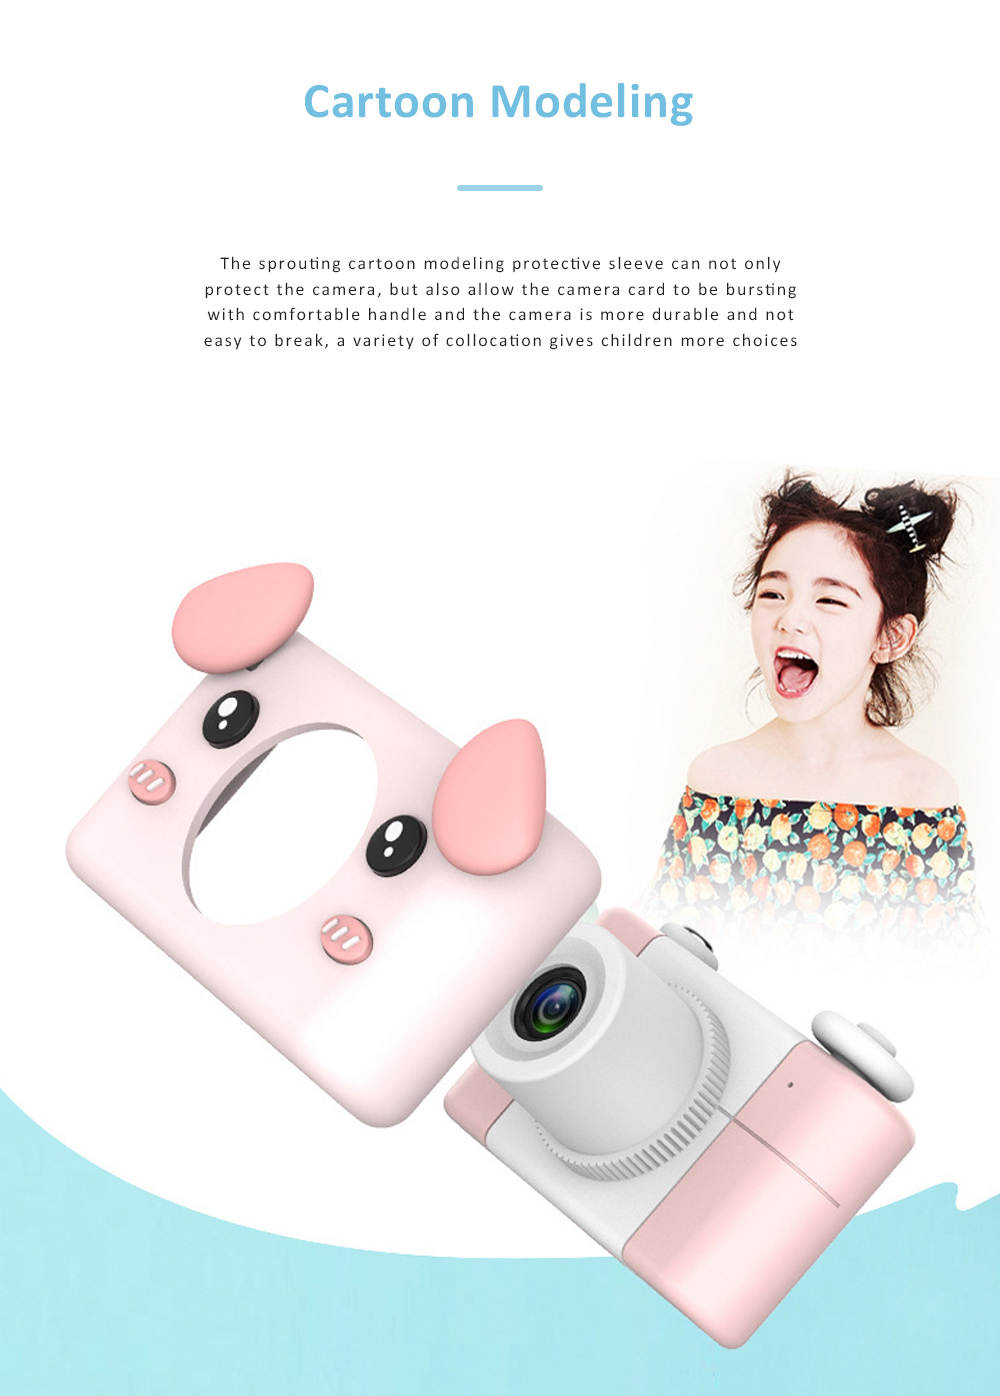 2inch HD Screen Electronic Camera For Kids Children Creative Digital Camera Tft Display Video Recording Kids Camera With Silicone Soft Cover 2